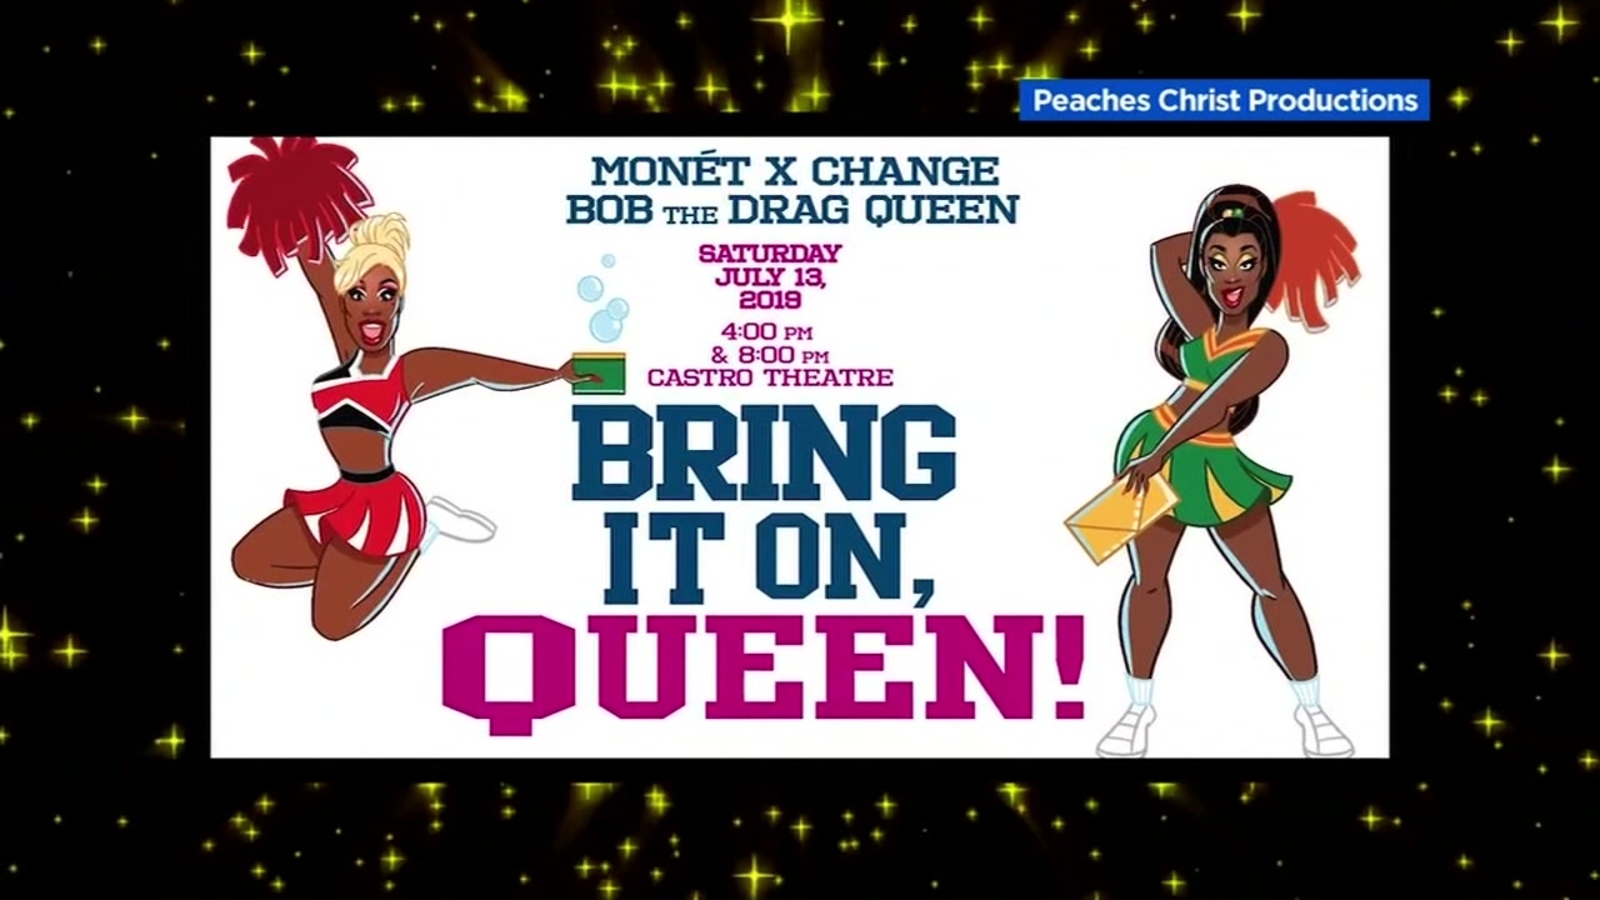 'Bring It On, Queen' playing at Castro Theatre on Saturday